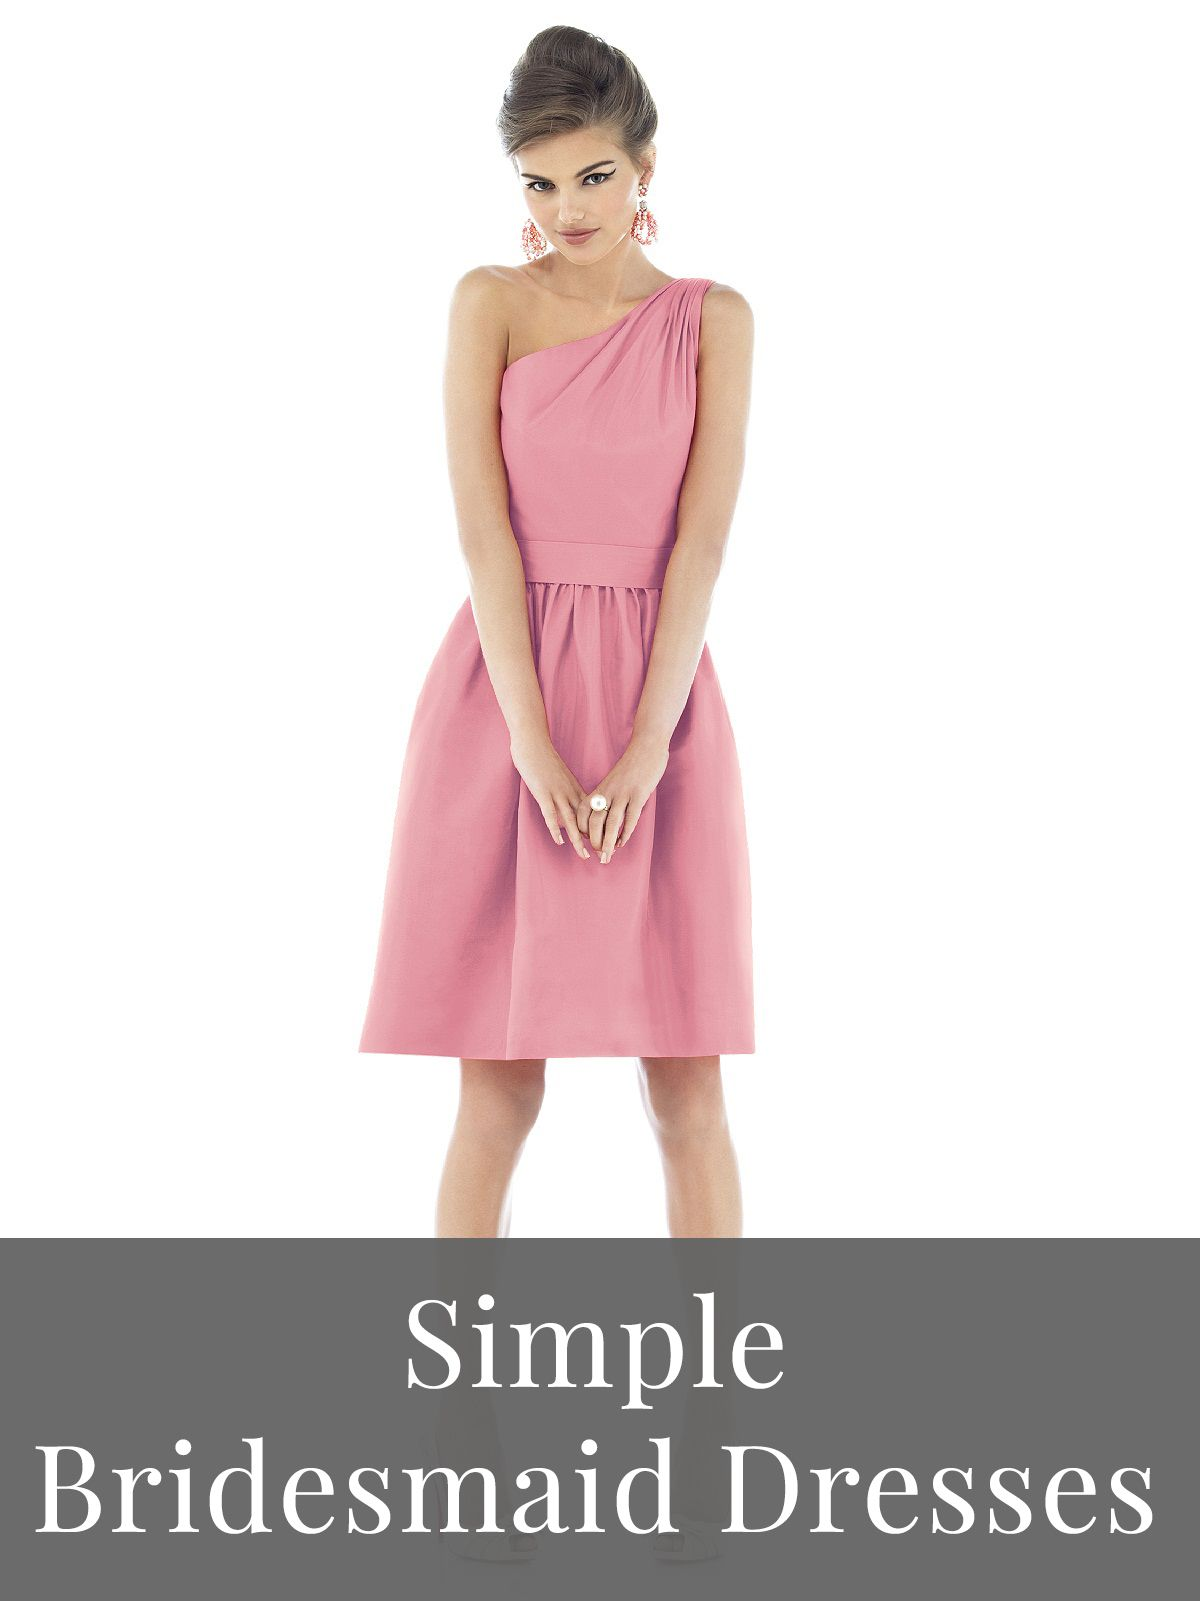 Simple Bridesmaid Dresses by Alfred Sung